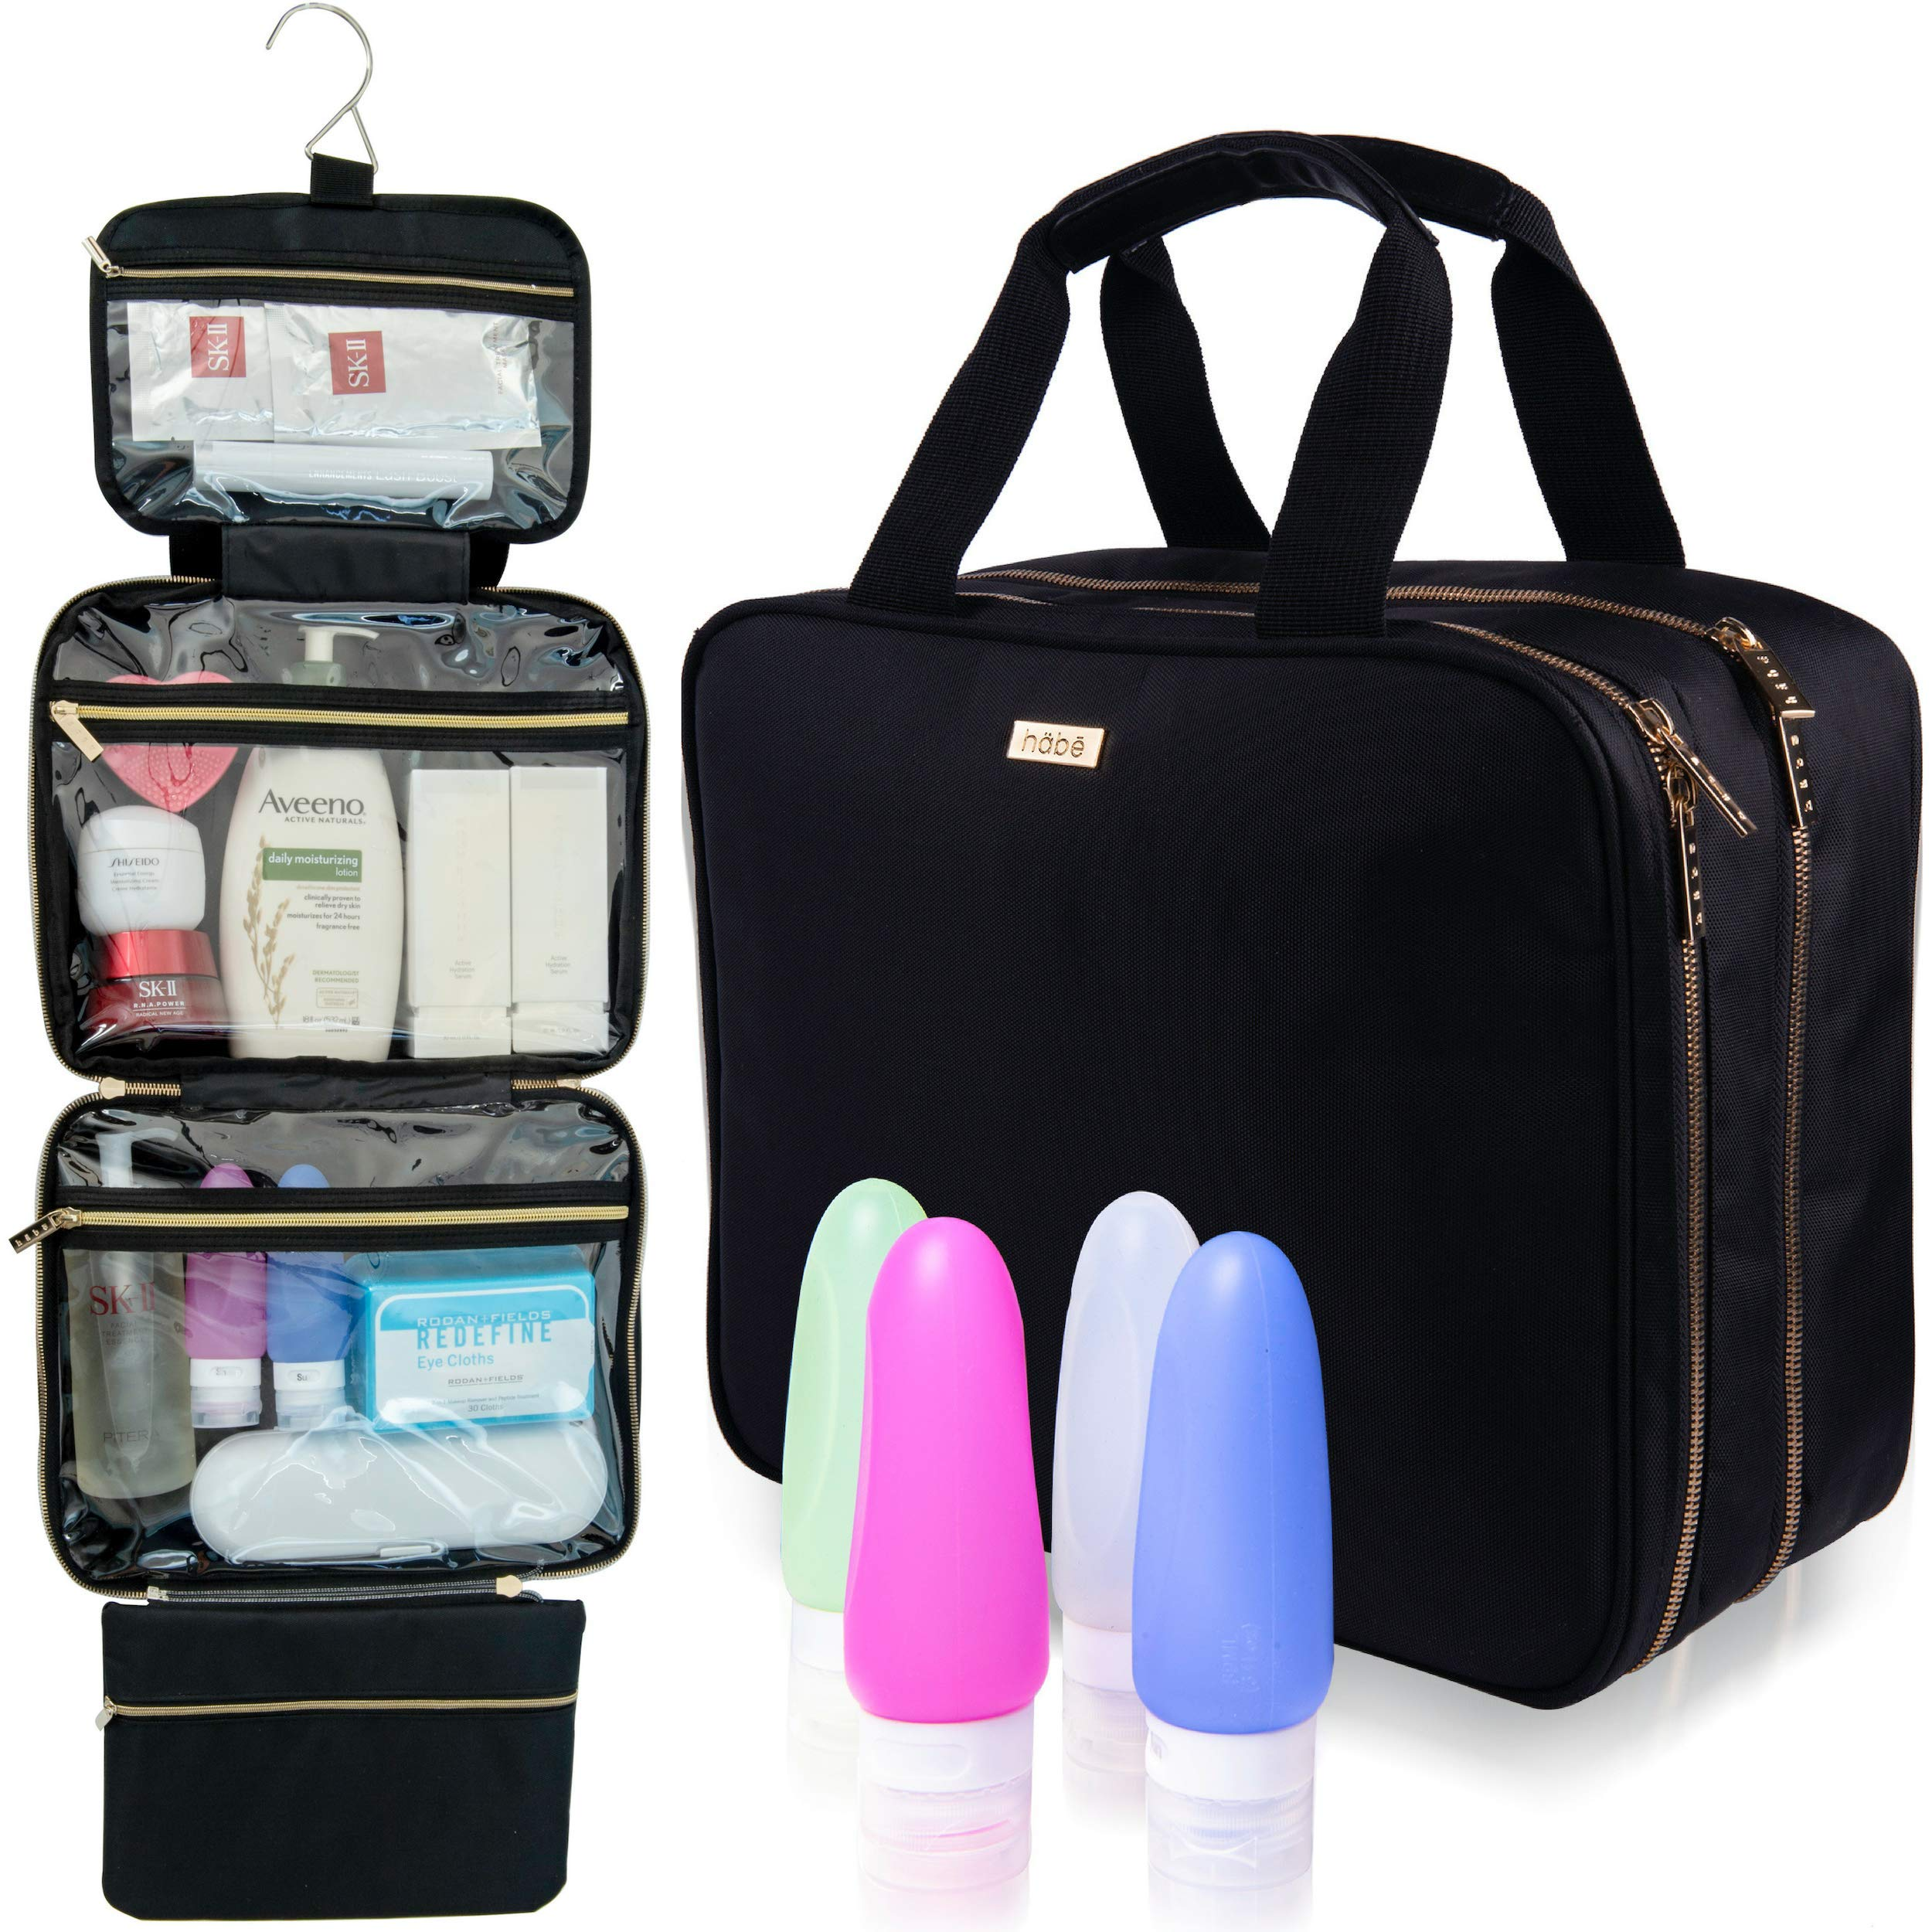 habe XL Hanging Travel Toiletry Bag | 4 BONUS Travel Bottles | Fits FULL SIZE Toiletries | Travel Makeup Bag | EXTRA LARGE Cosmetic Bags Organizer for Women | 3-IN-1 Bathroom, Make Up and Shower Kit